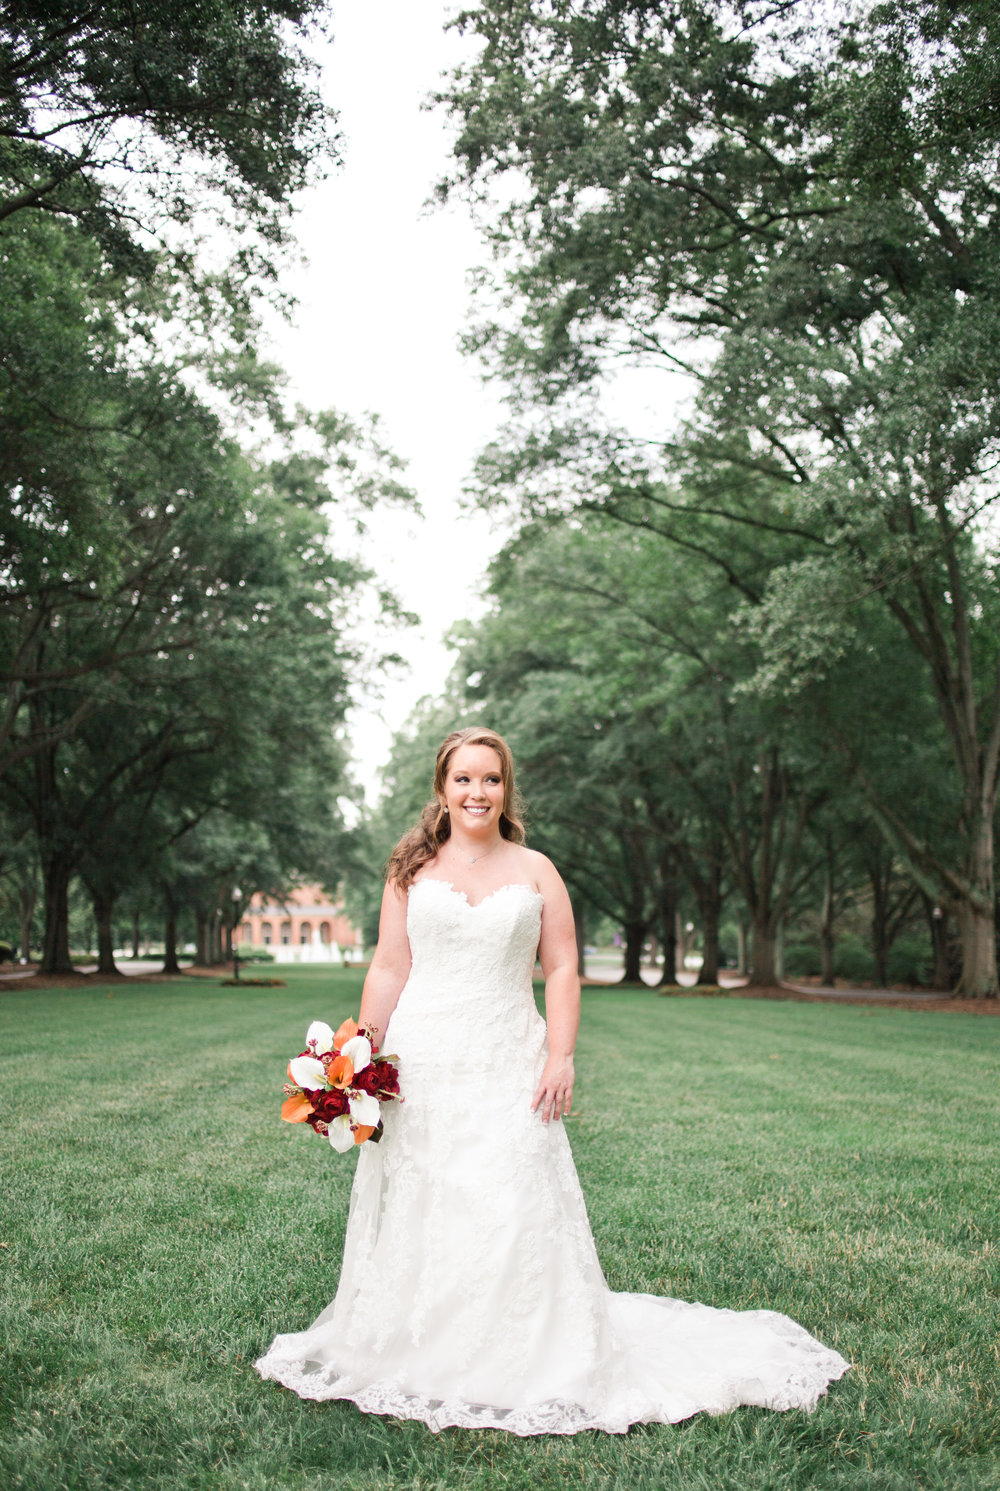 gabbie_bridal_poured_out_photography-7.jpg